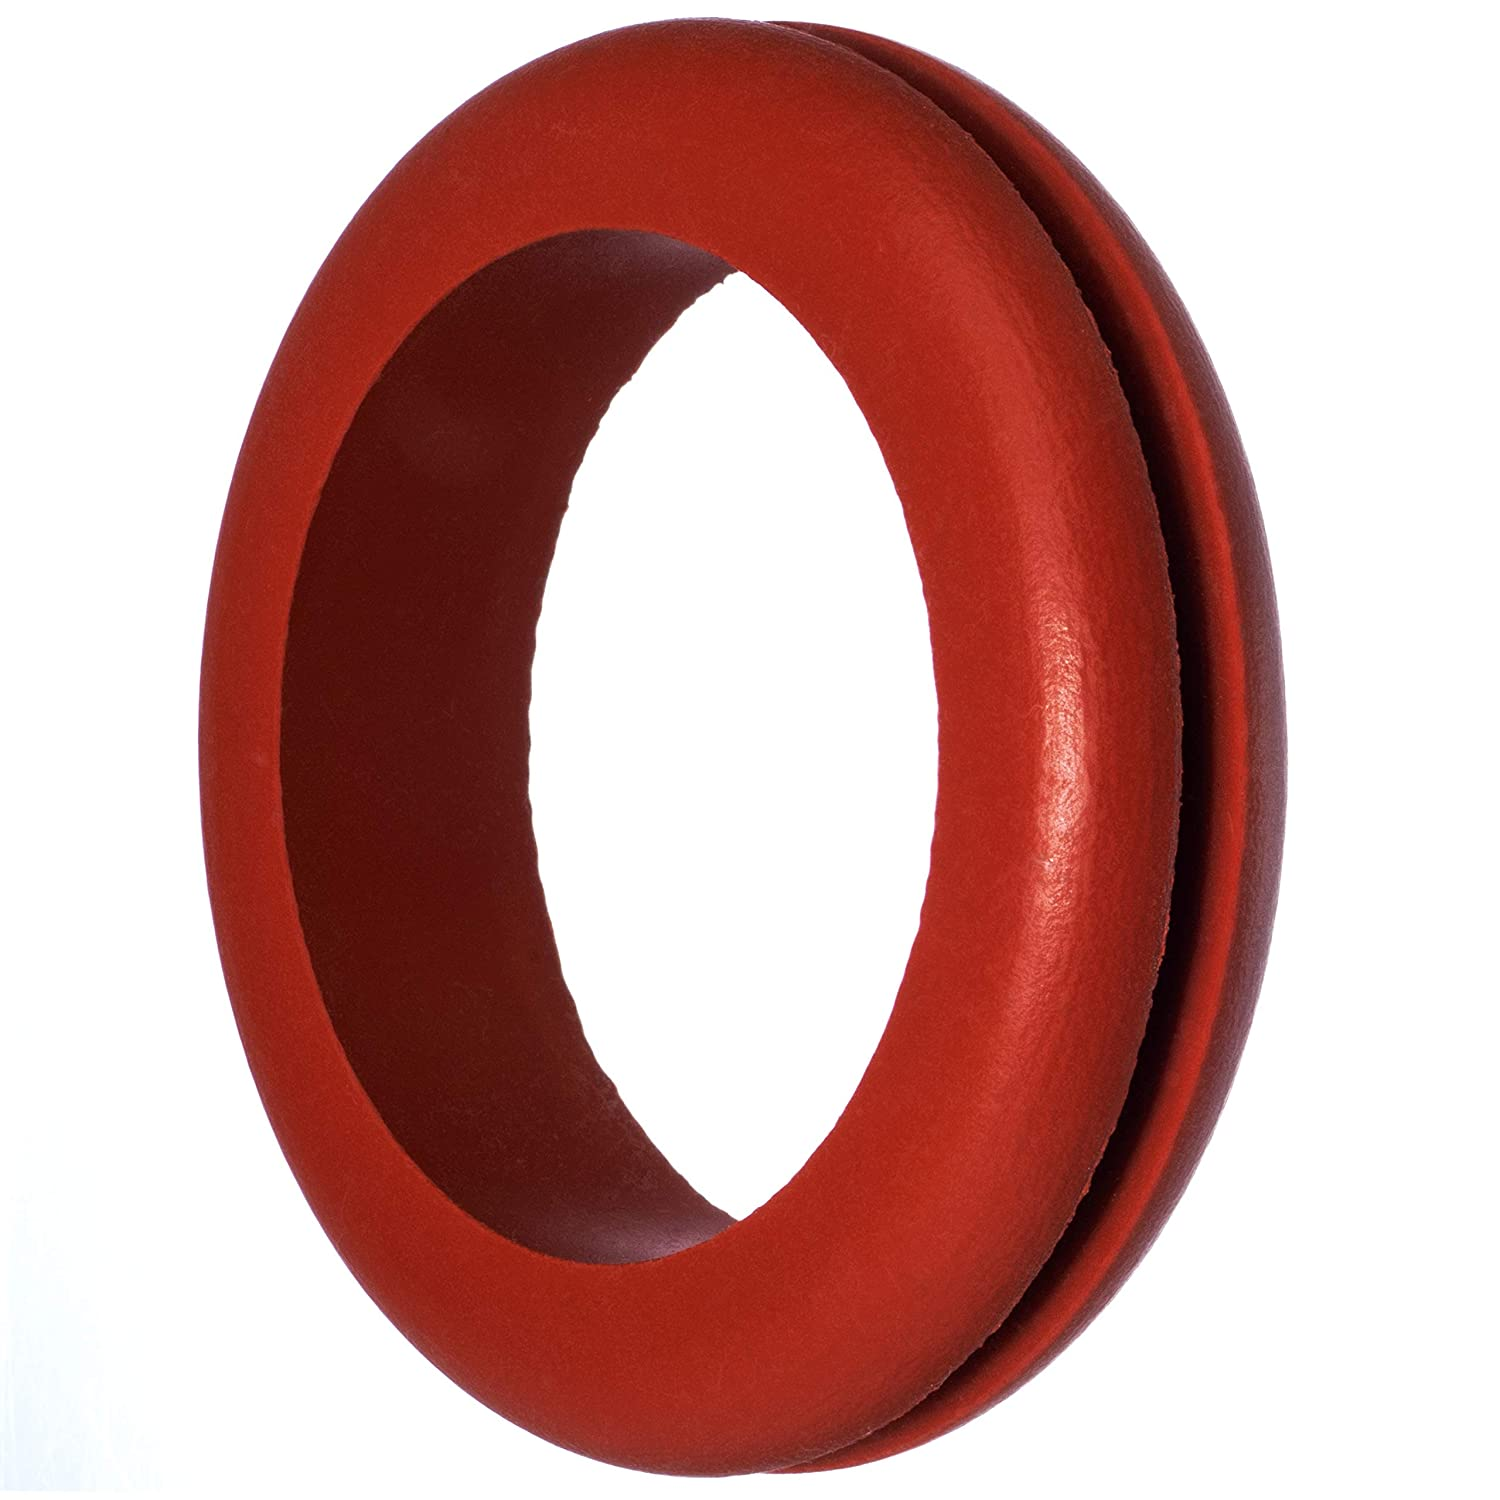 USA Max 75% OFF Sealing Silicone Rubber Import Push-in Grommet 1 for Hole and 1